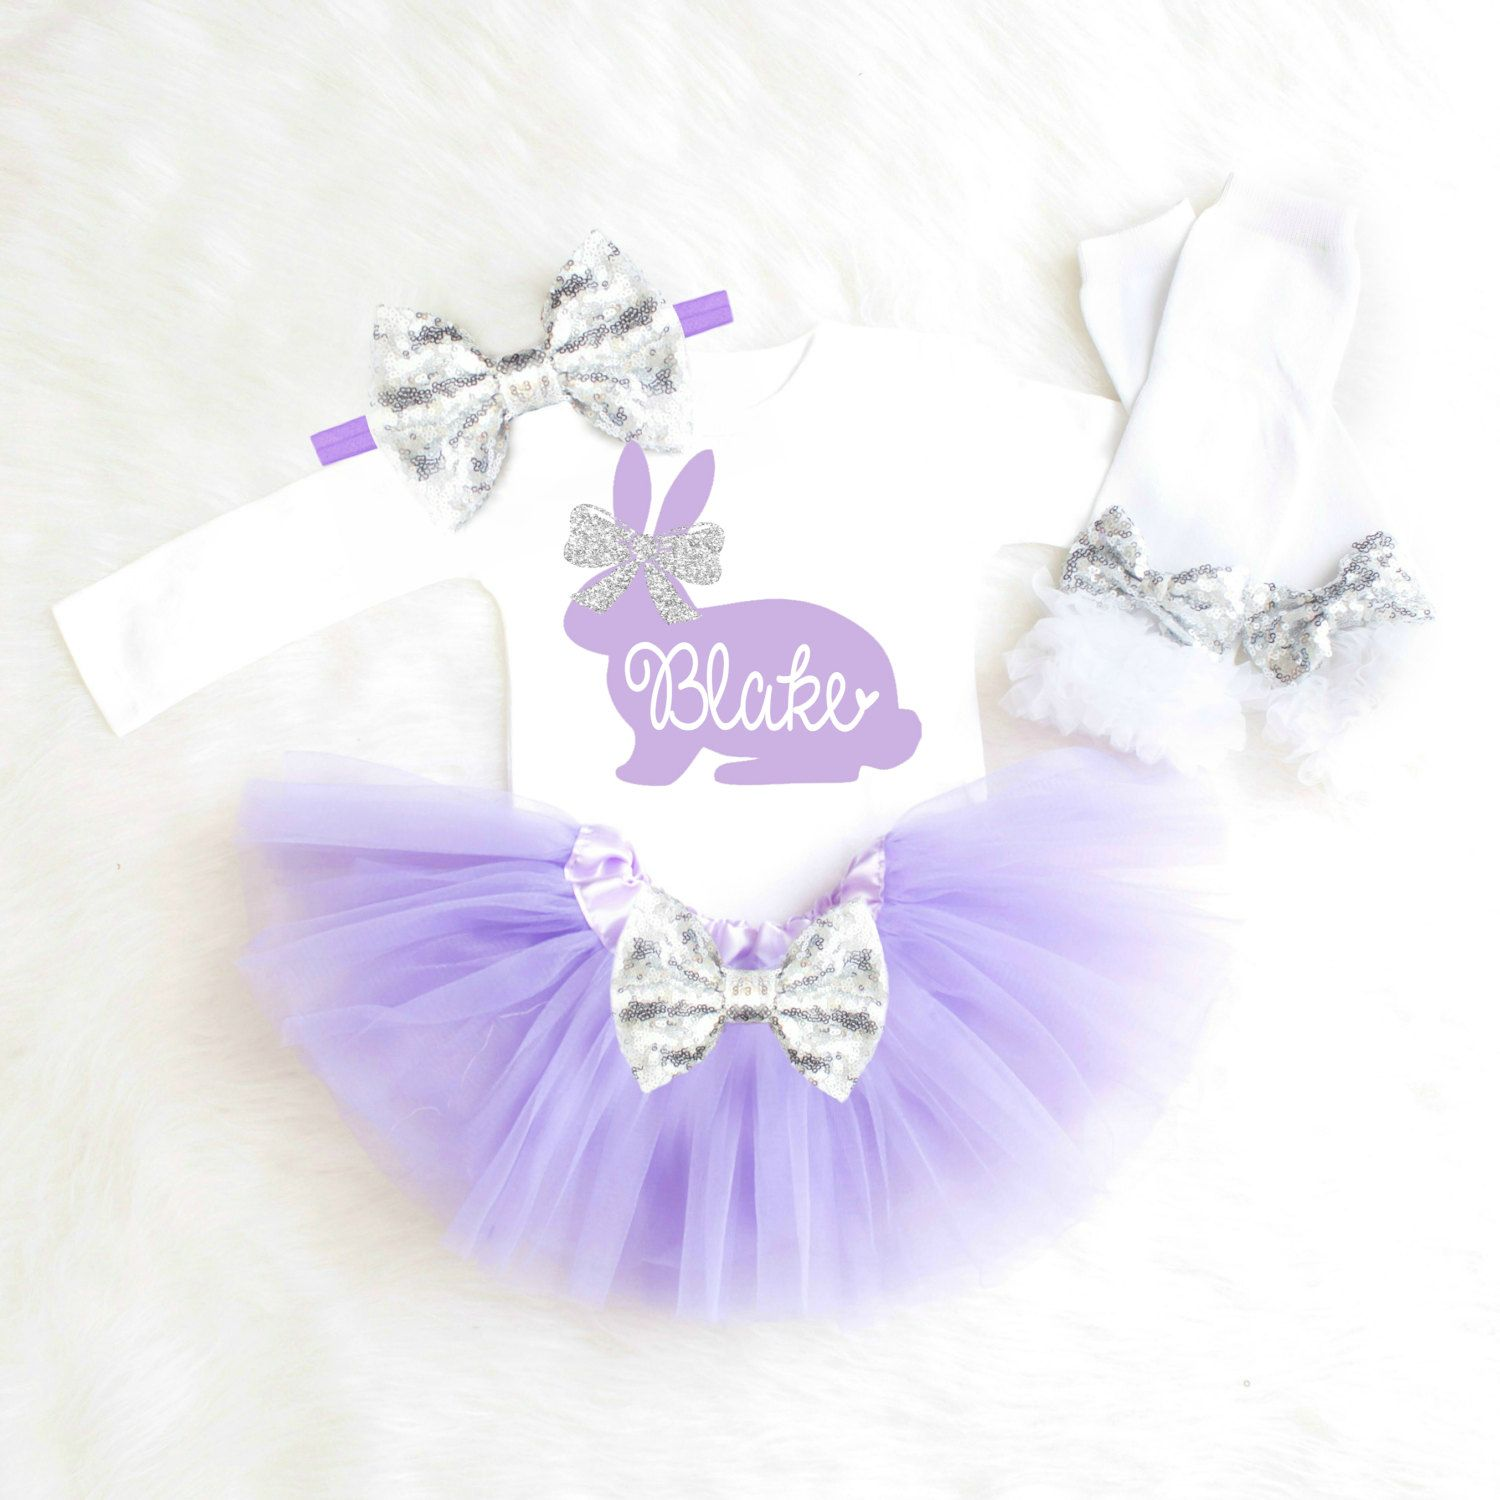 BABY GIRL/'S HAPPY EASTER OUTFIT Princess Gift Present Love Cute Party Celebrate